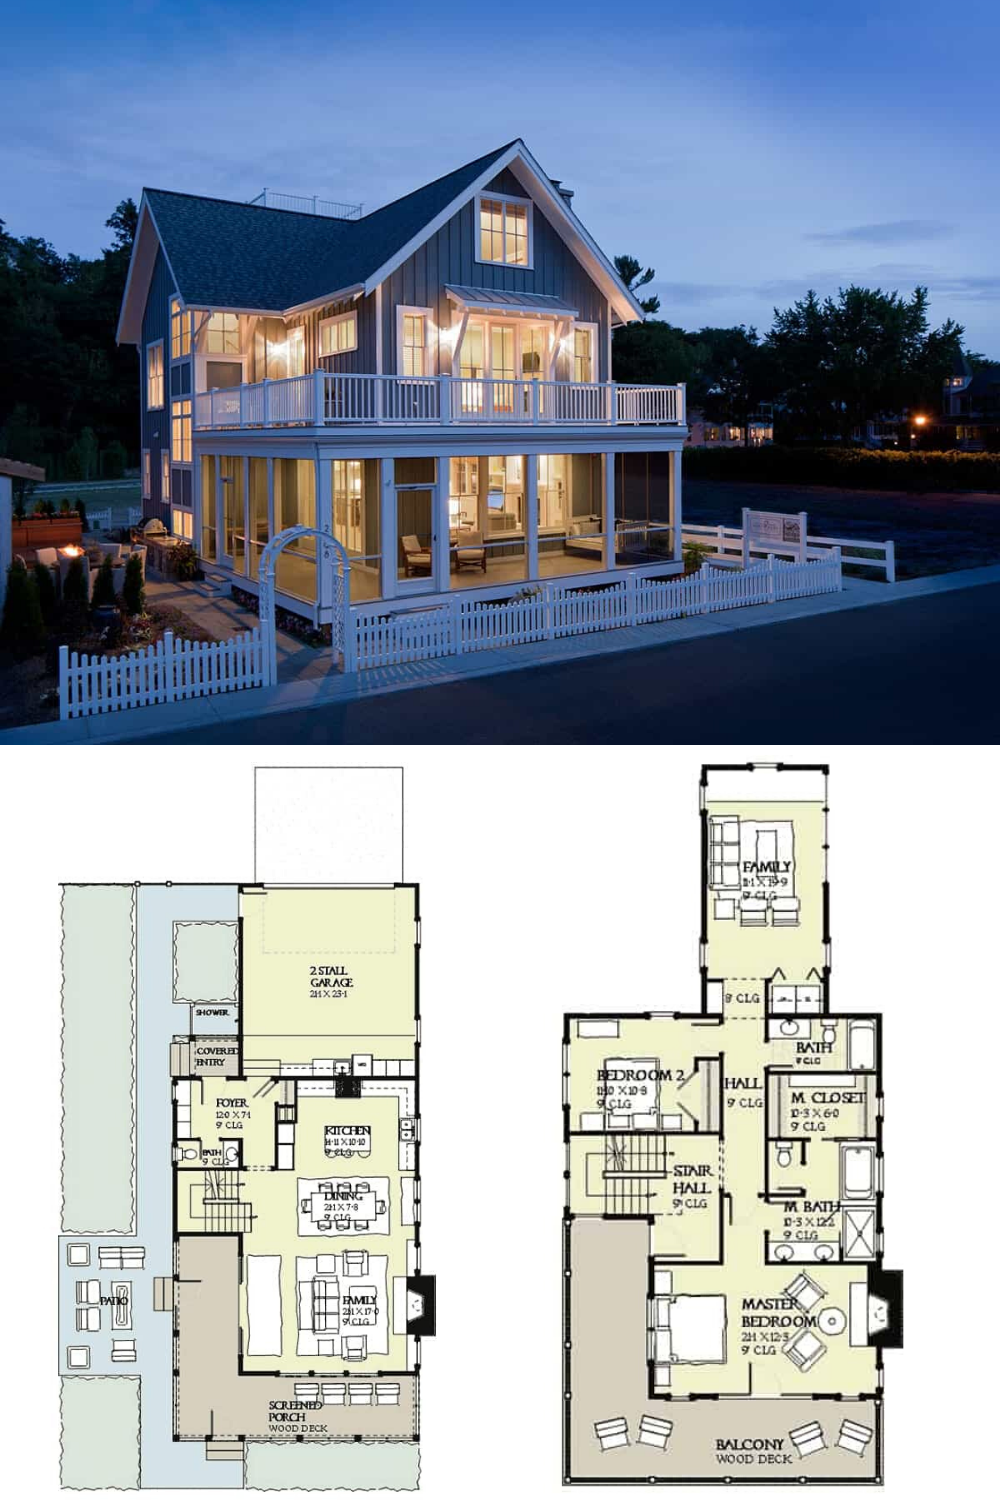 Three Story 4 Bedroom House With Plenty Of Outdoor Living Spaces Floor Plan Beach House Plan Floor Plans Beach House Vacation